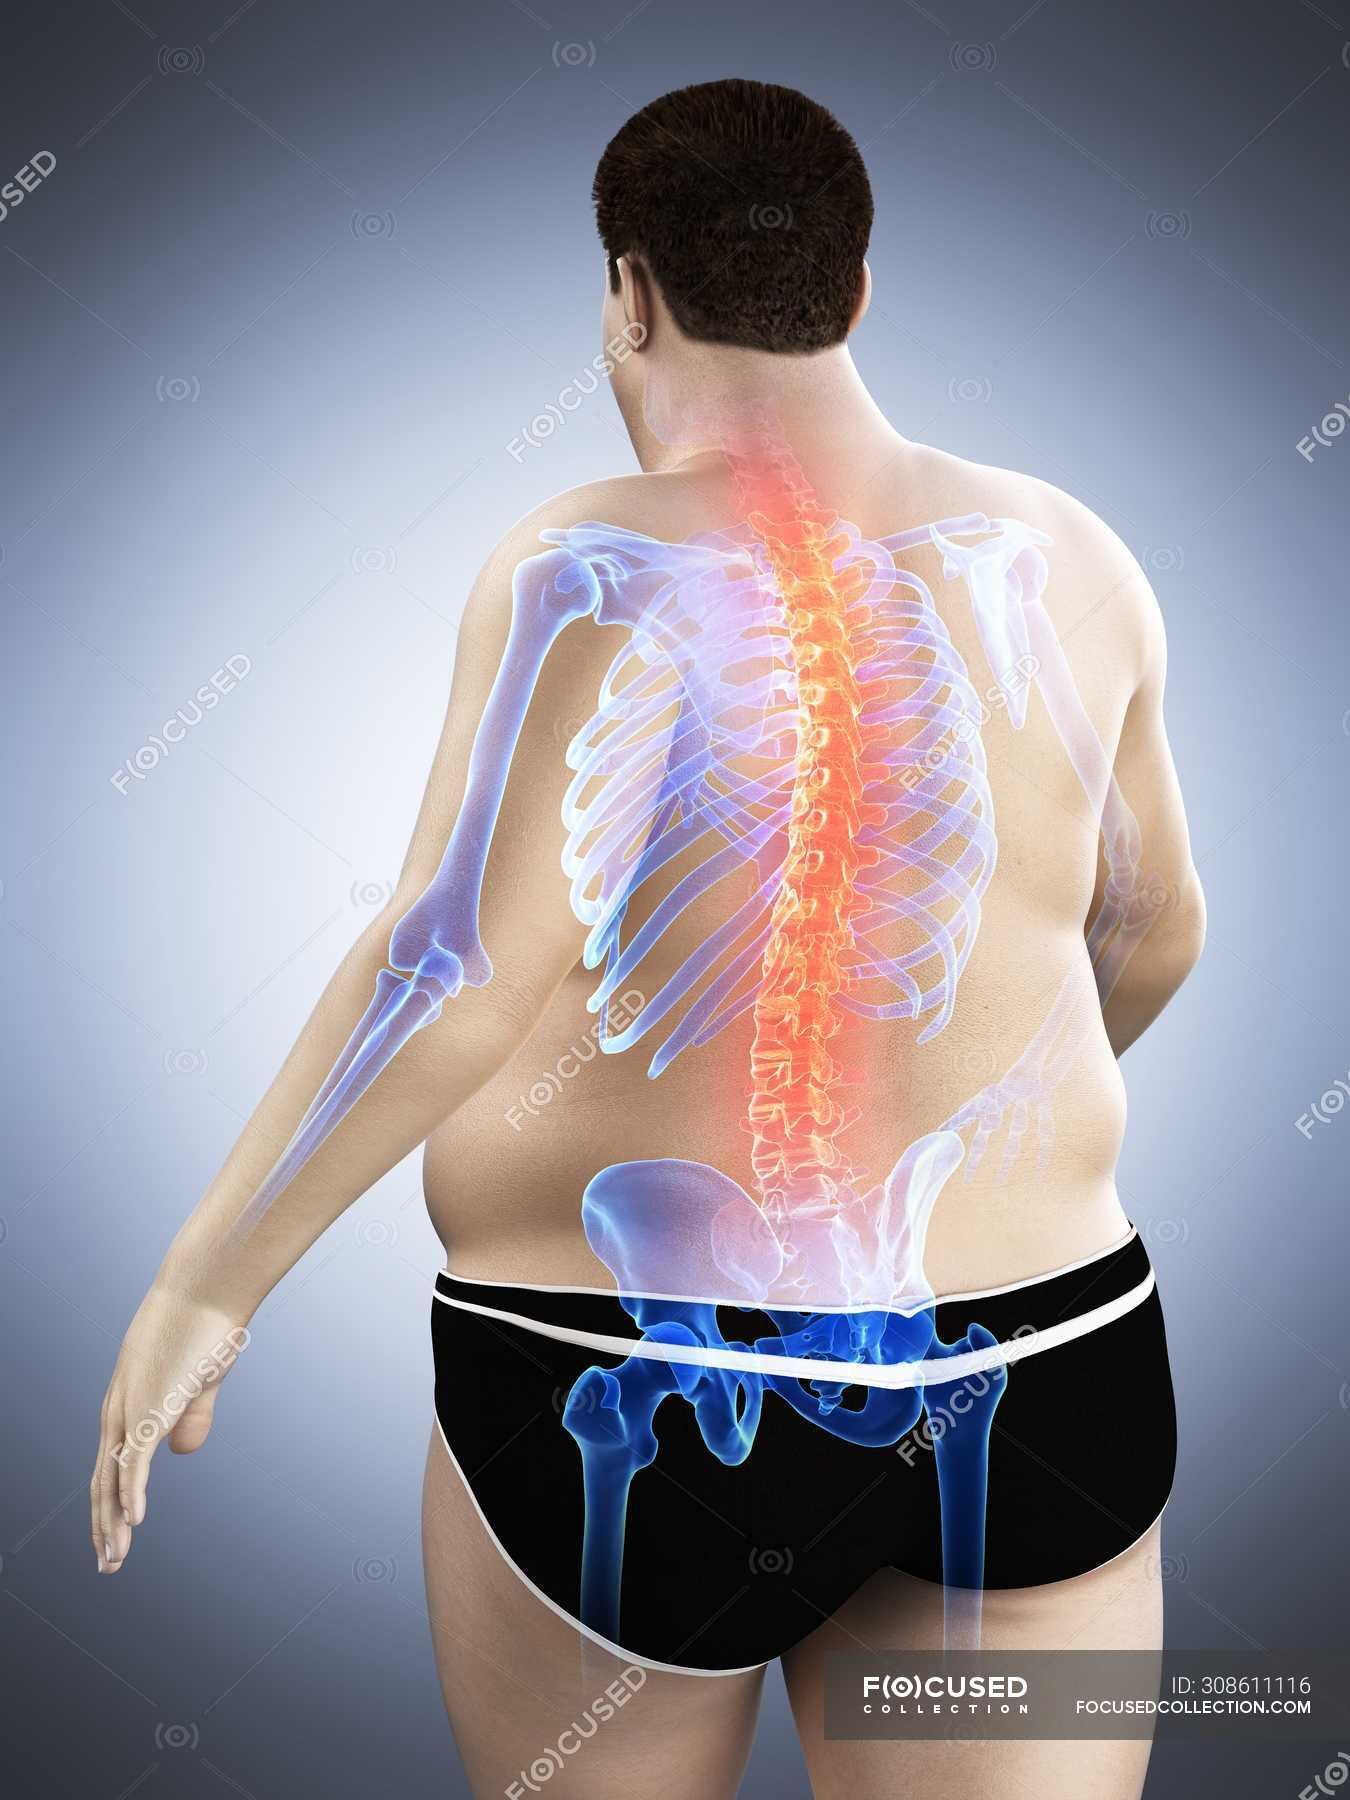 Obese Male Body With Back Pain Digital Illustration Intervertebral Discs Conceptual Stock Photo 308611116